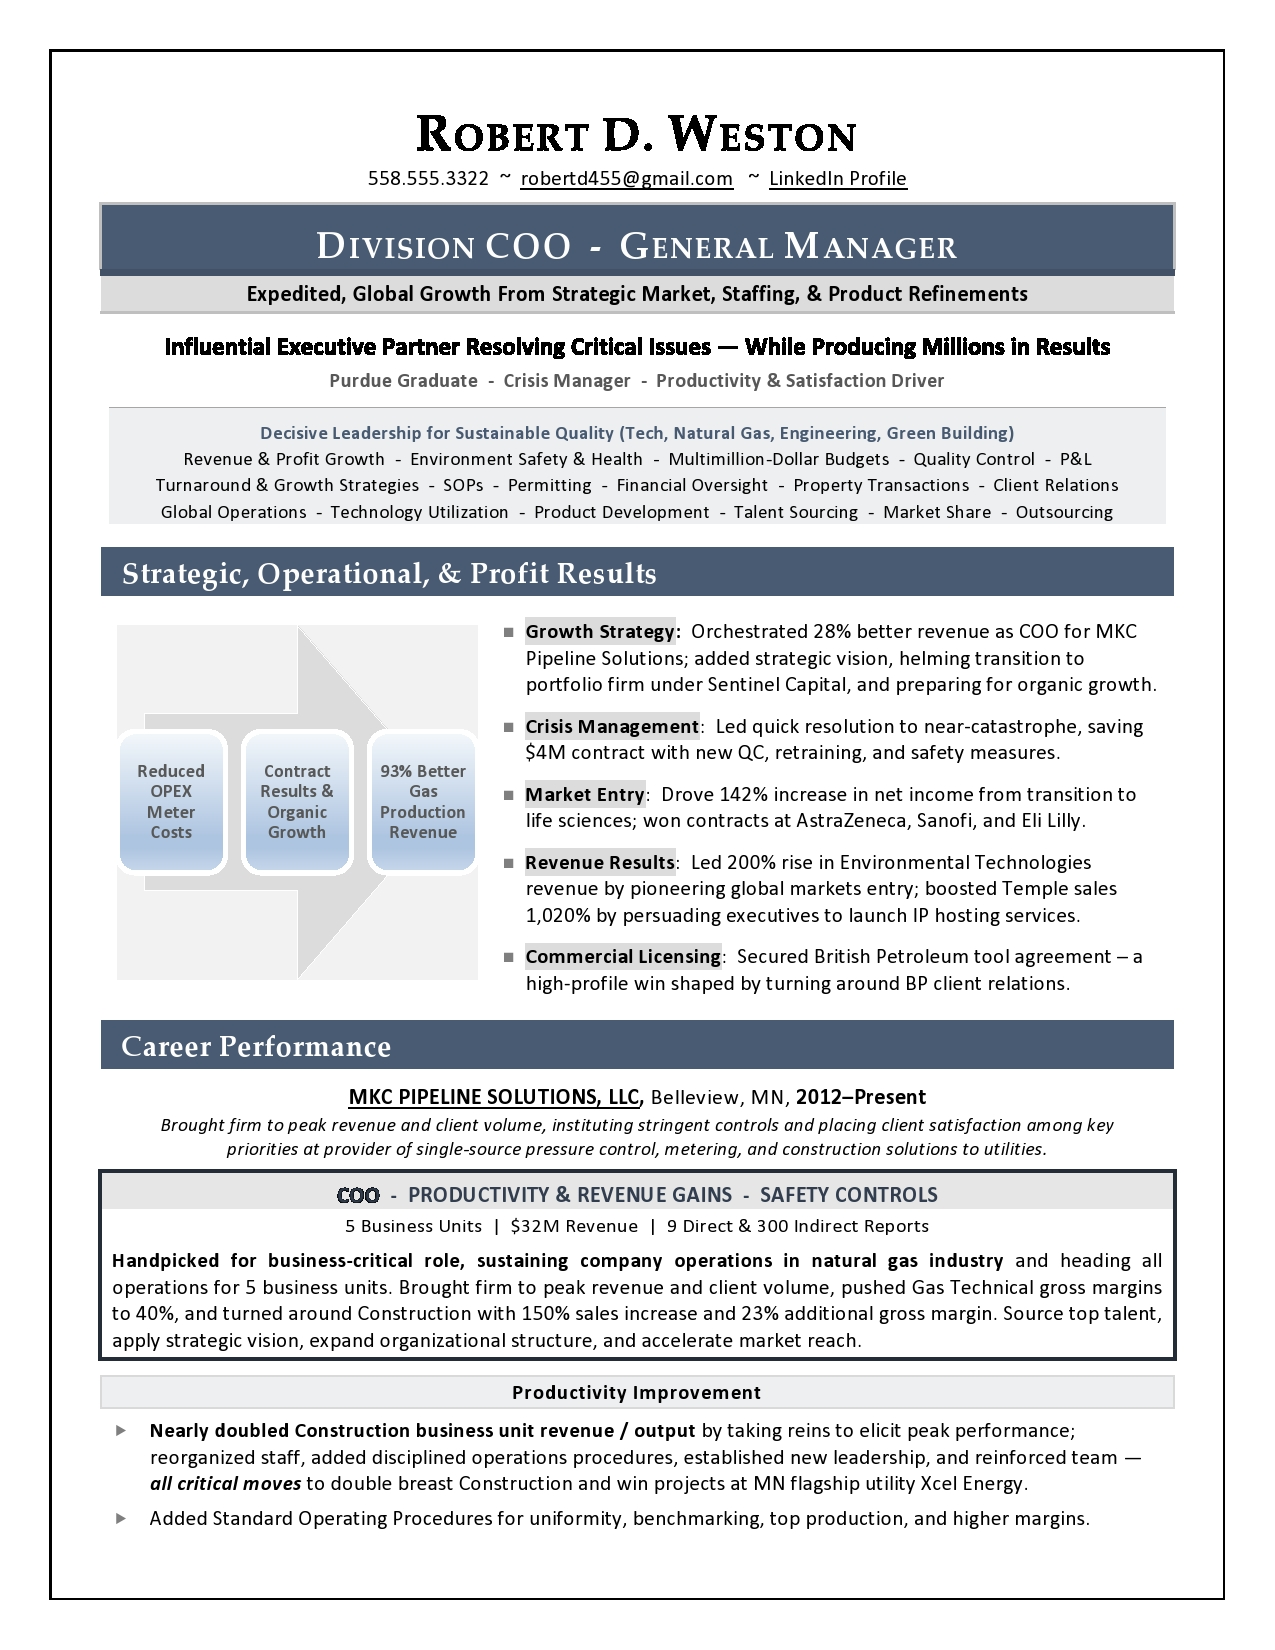 A professional resume gives you the edge in your job search strategy